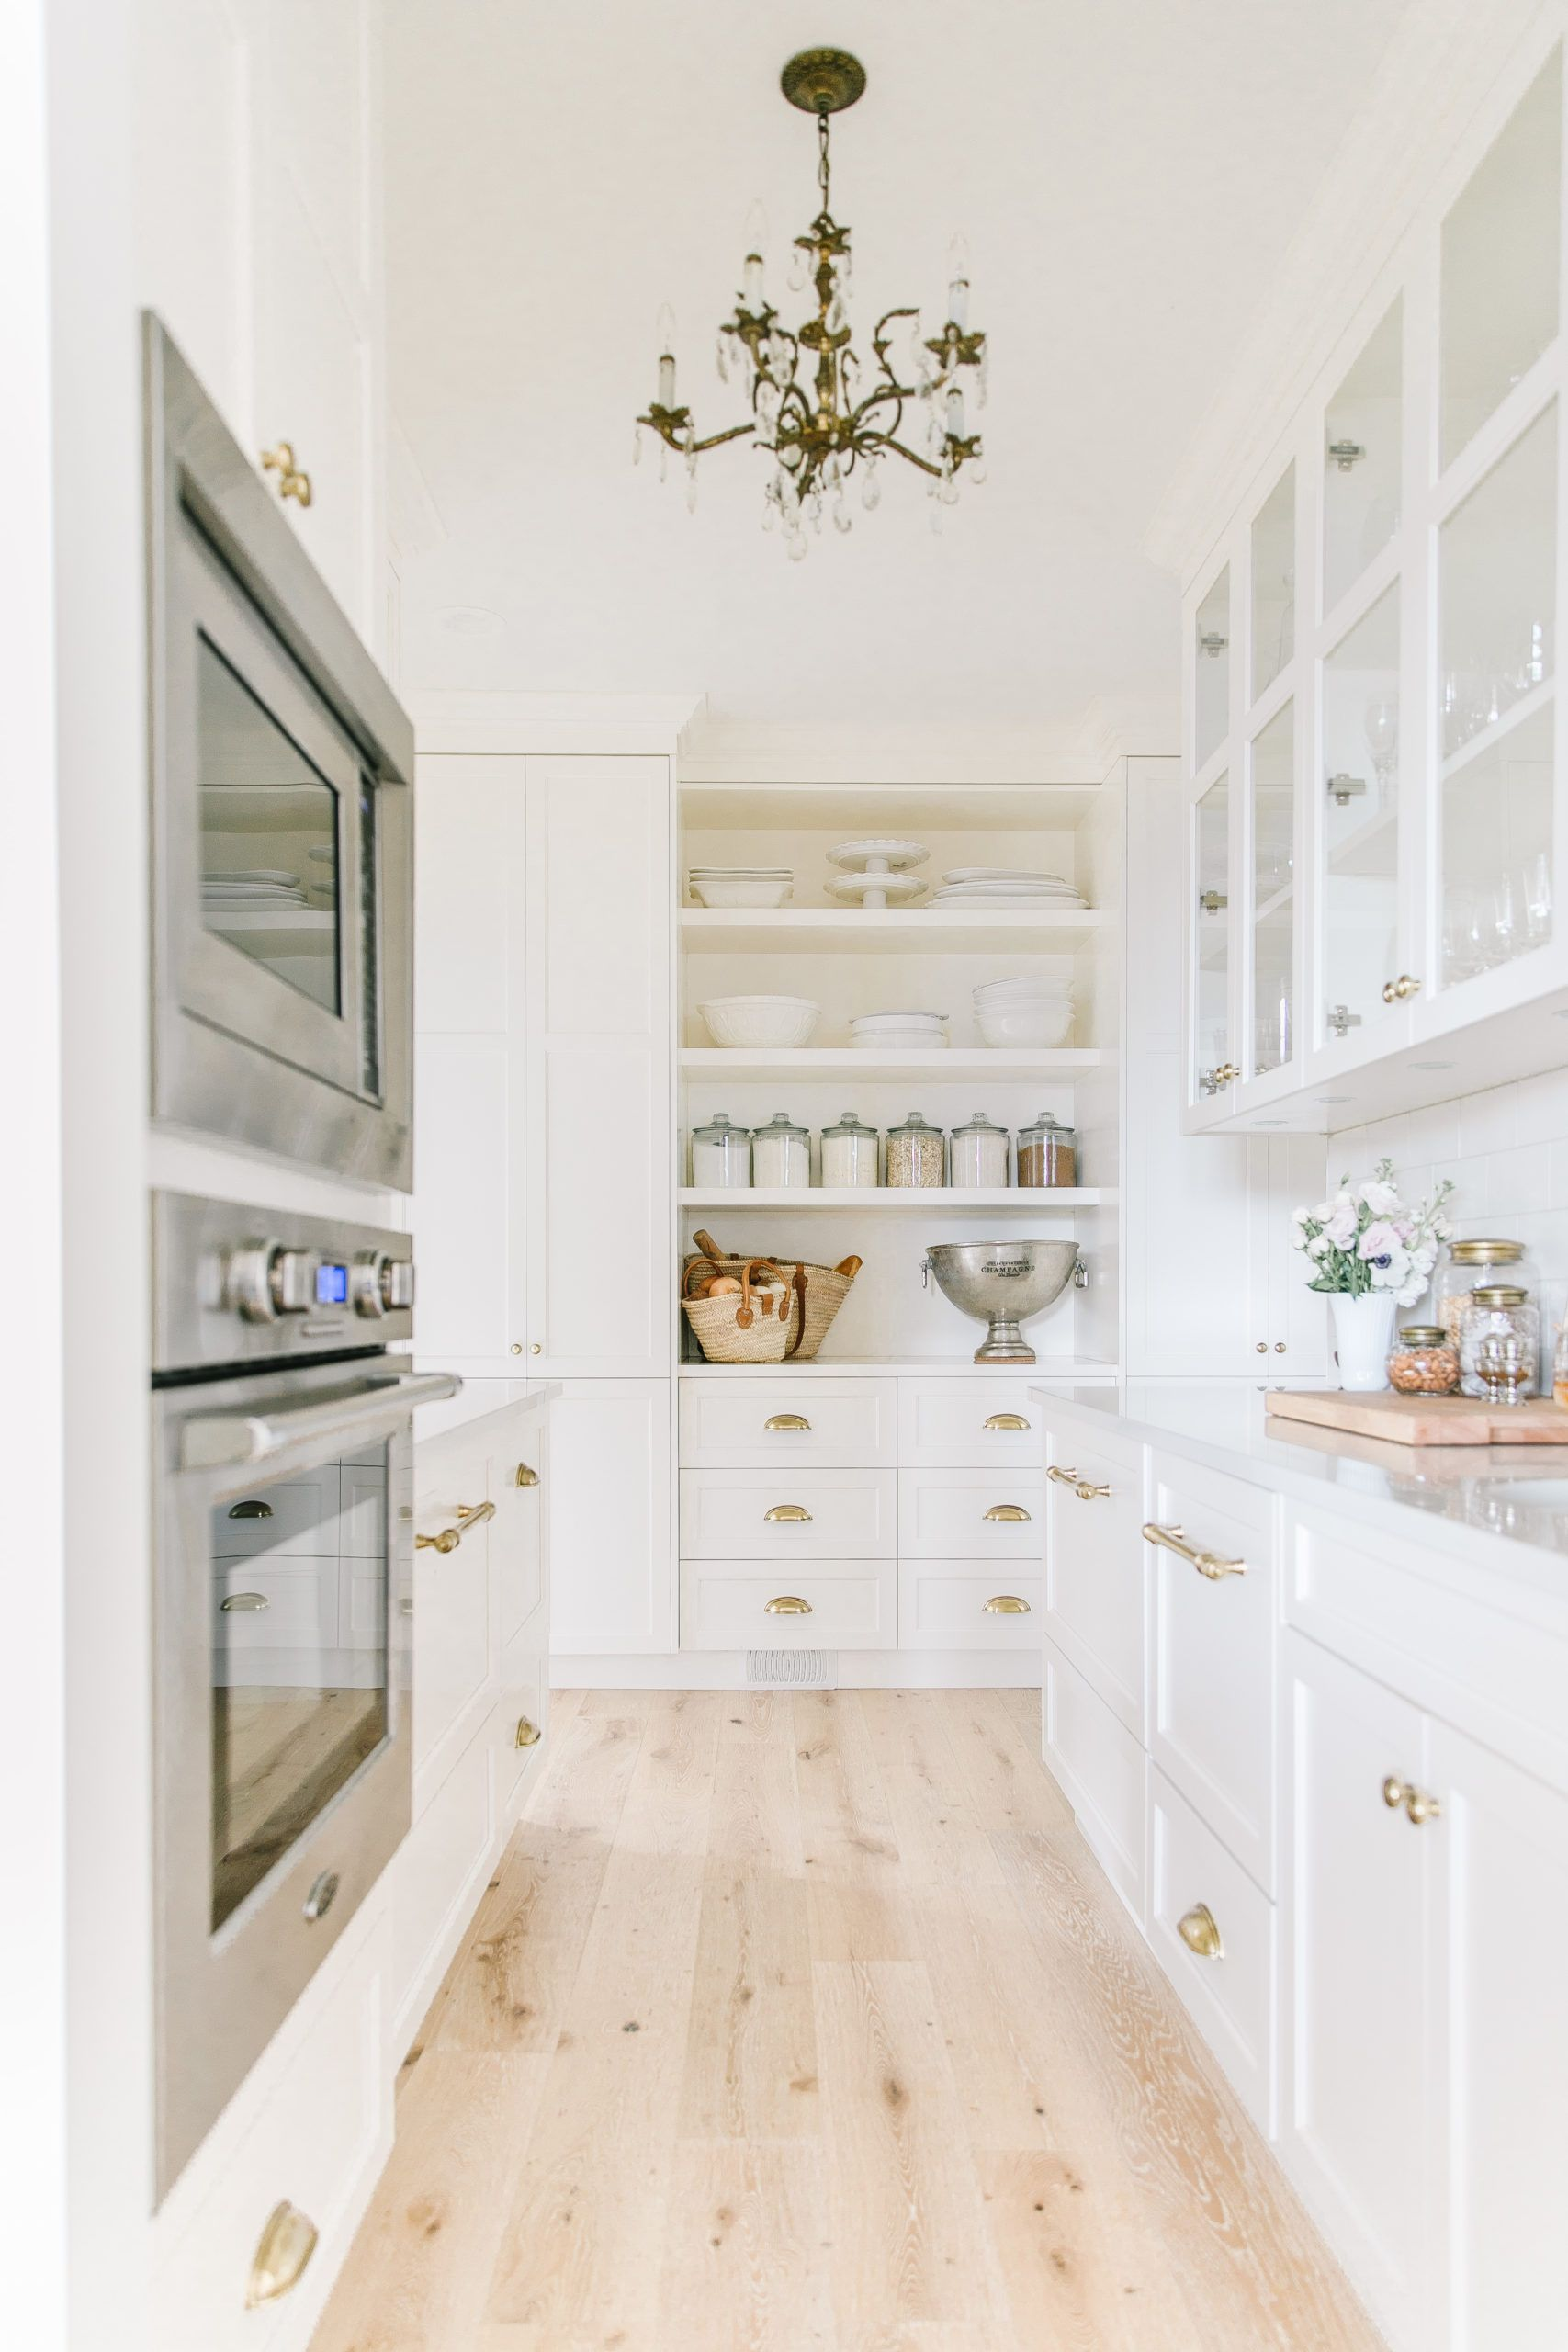 Our Pantry Reveal - Fraiche Living